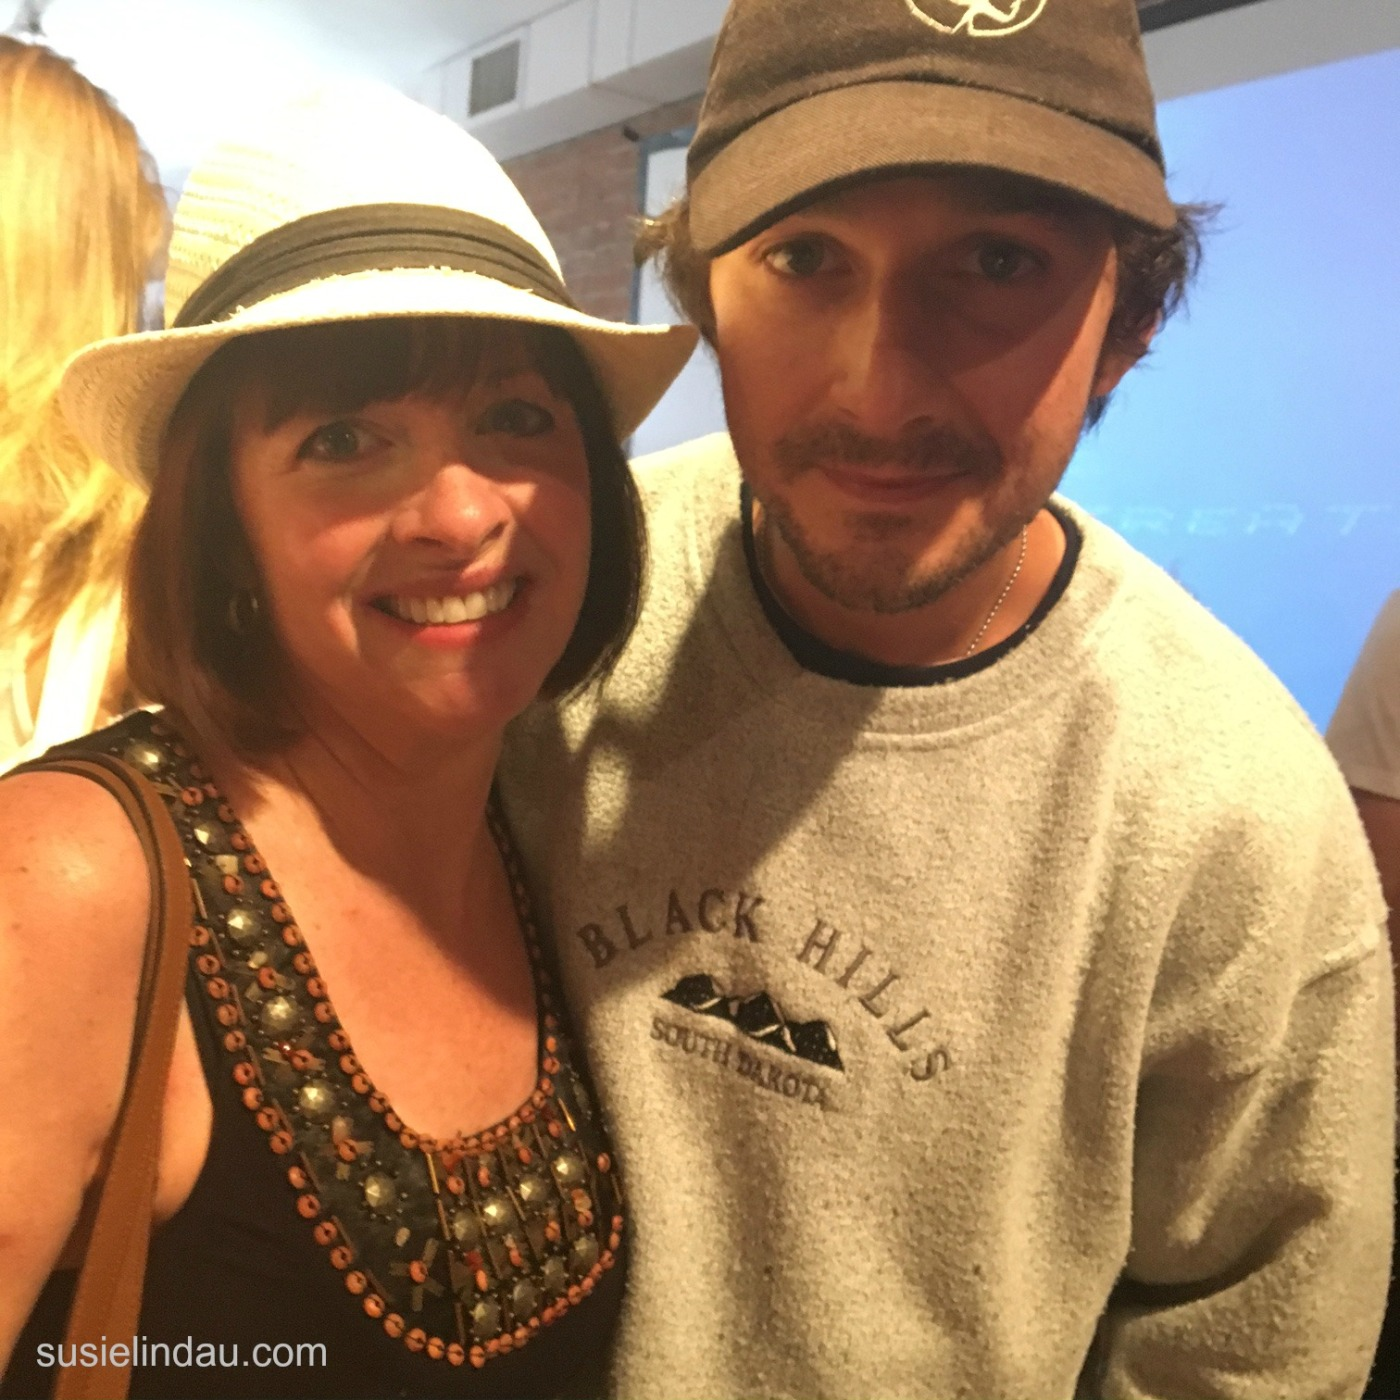 Shia LaBeouf and Susie Lindau at the Boulder Museum of Contemporary Art